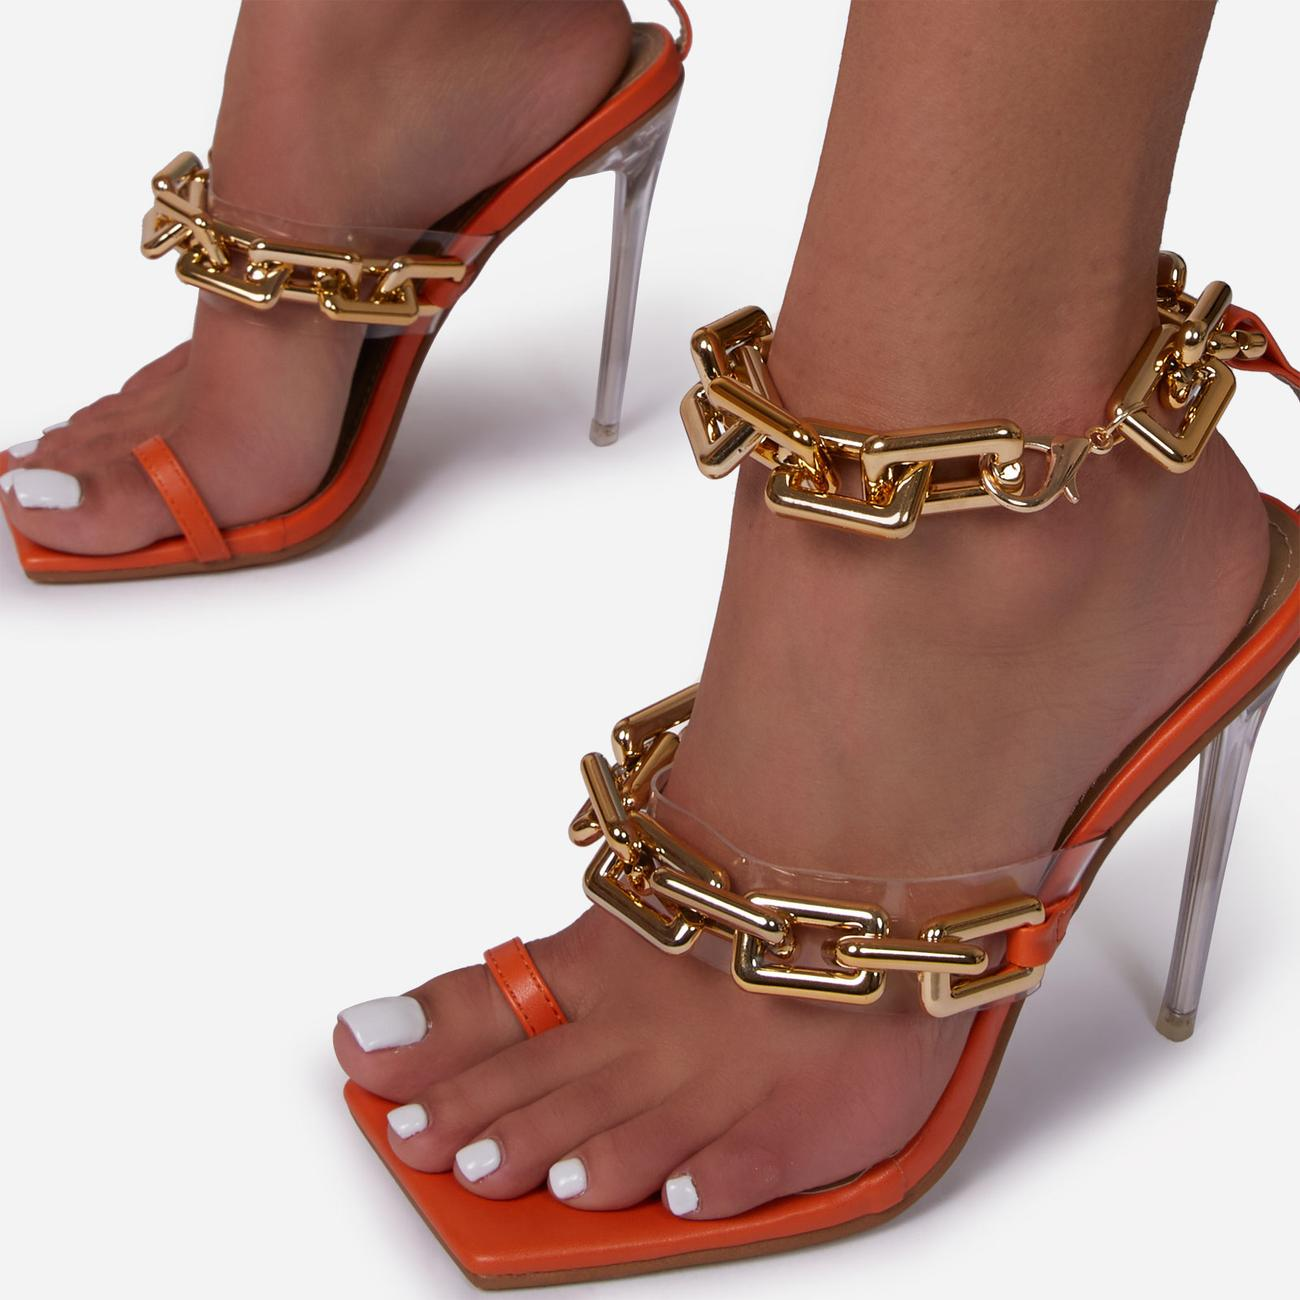 Morgana Triple Strap Chain Detail Square Toe Clear Perspex Heel In Orange Faux Leather Image 3